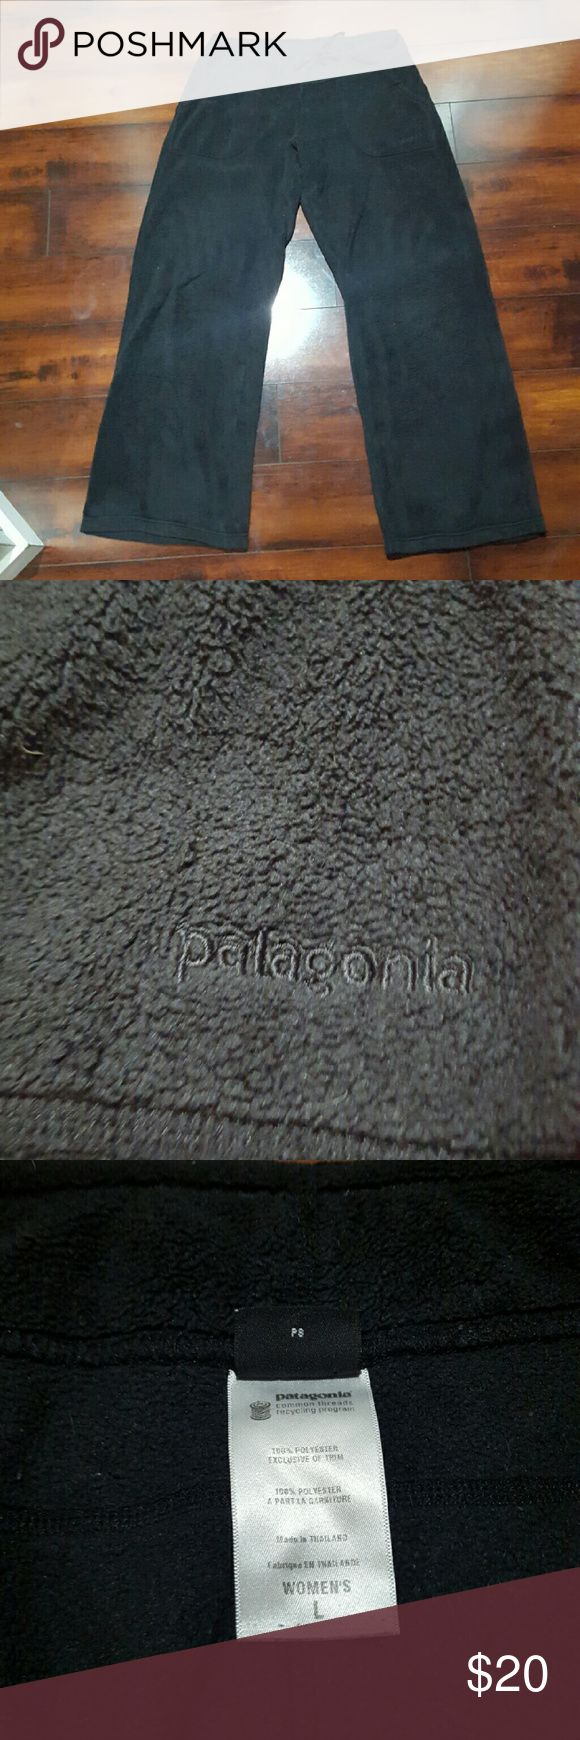 Women's black Patagonia fleece pants, size large Women's black Patagonia fleece pants, size large.  Has some fuzzies, but very soft. Patagonia Pants Track Pants & Joggers